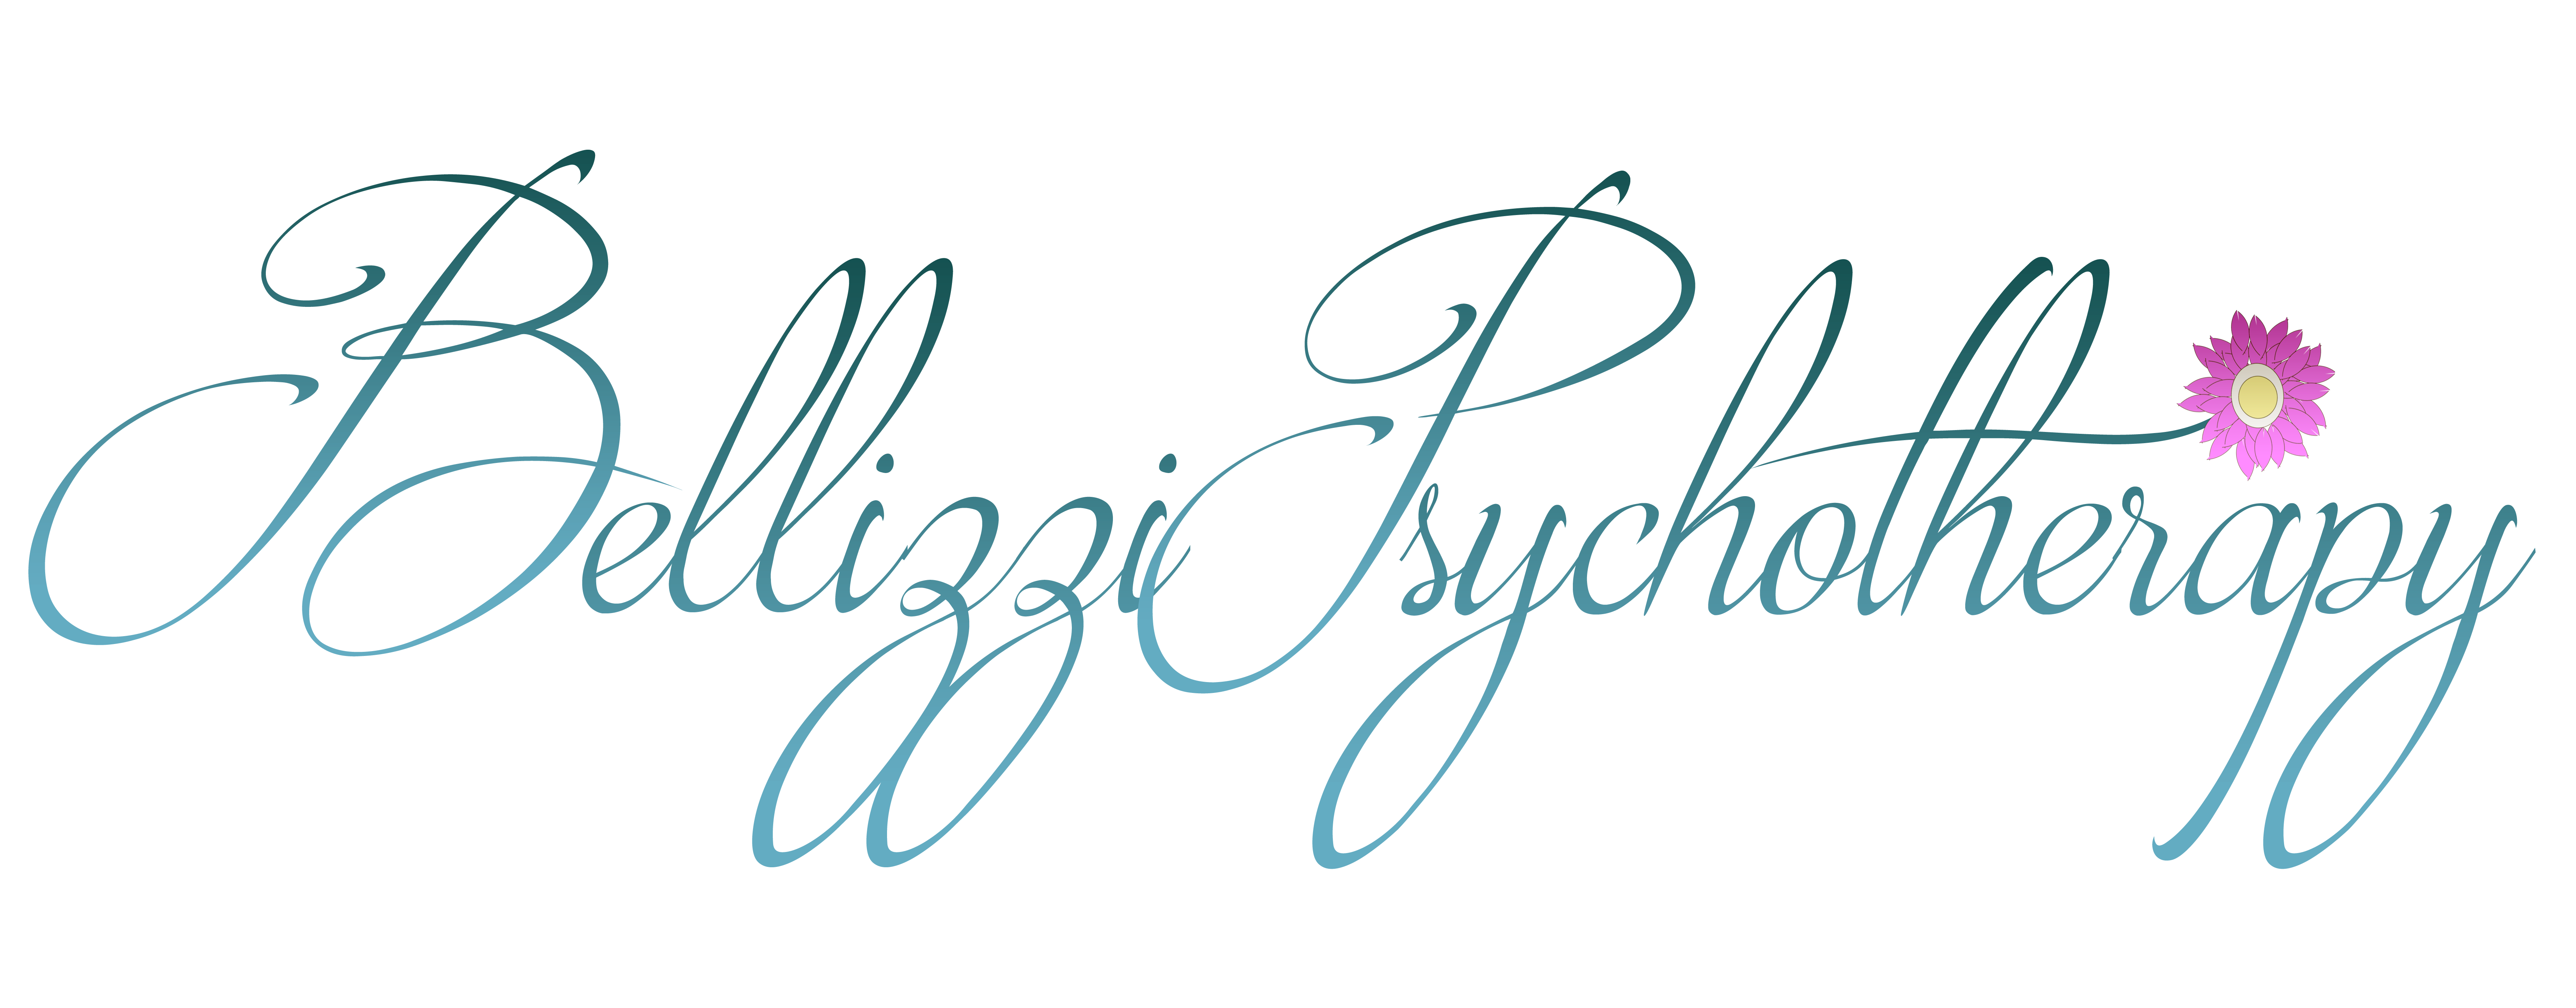 Bellizzi Psychotherapy | Heather Bellizzi, LCSW - Psychotherapist